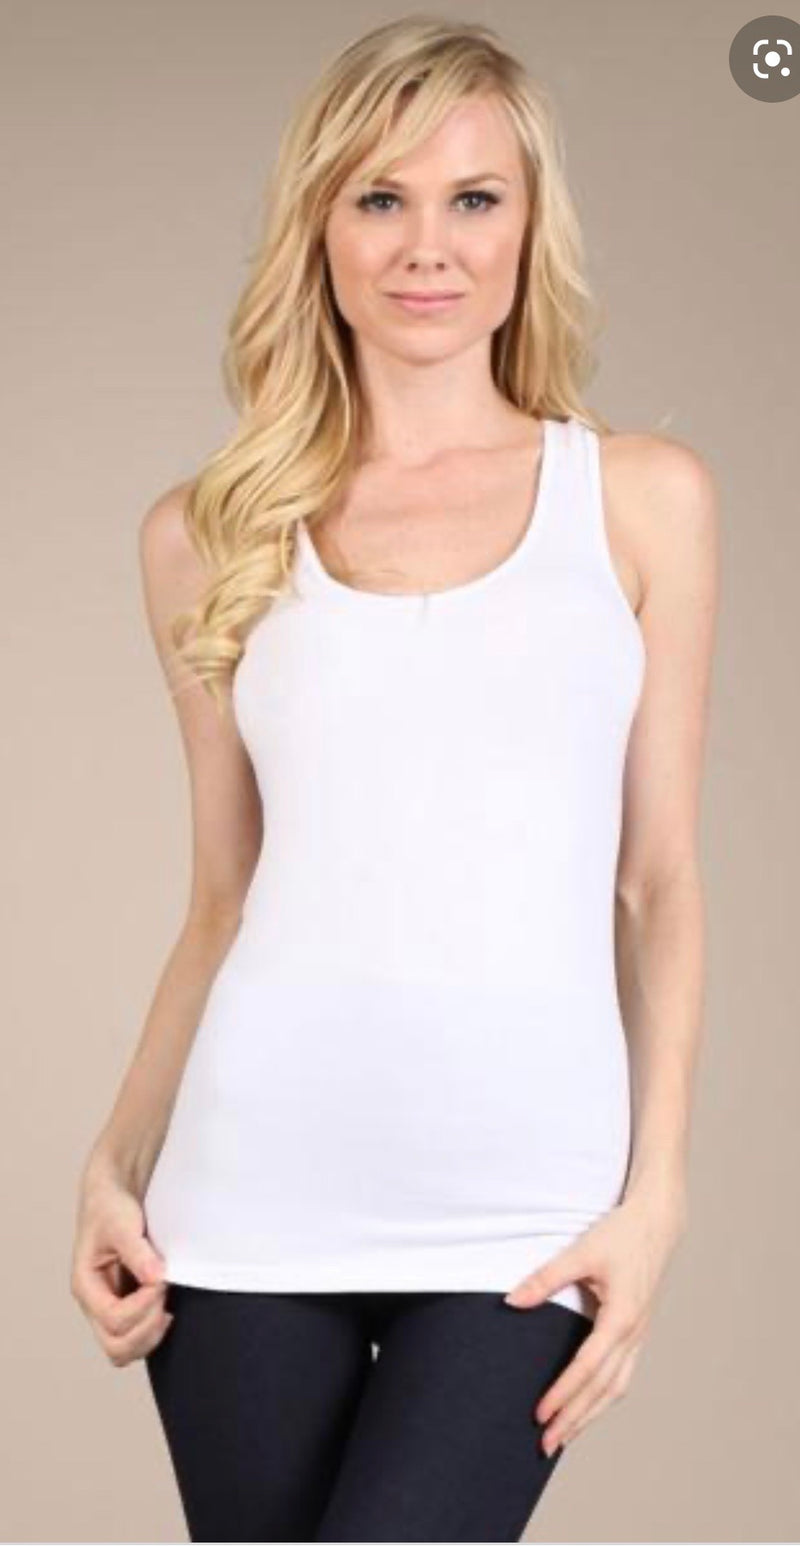 White scoop neck racer back top - WenLeeMae Boutique